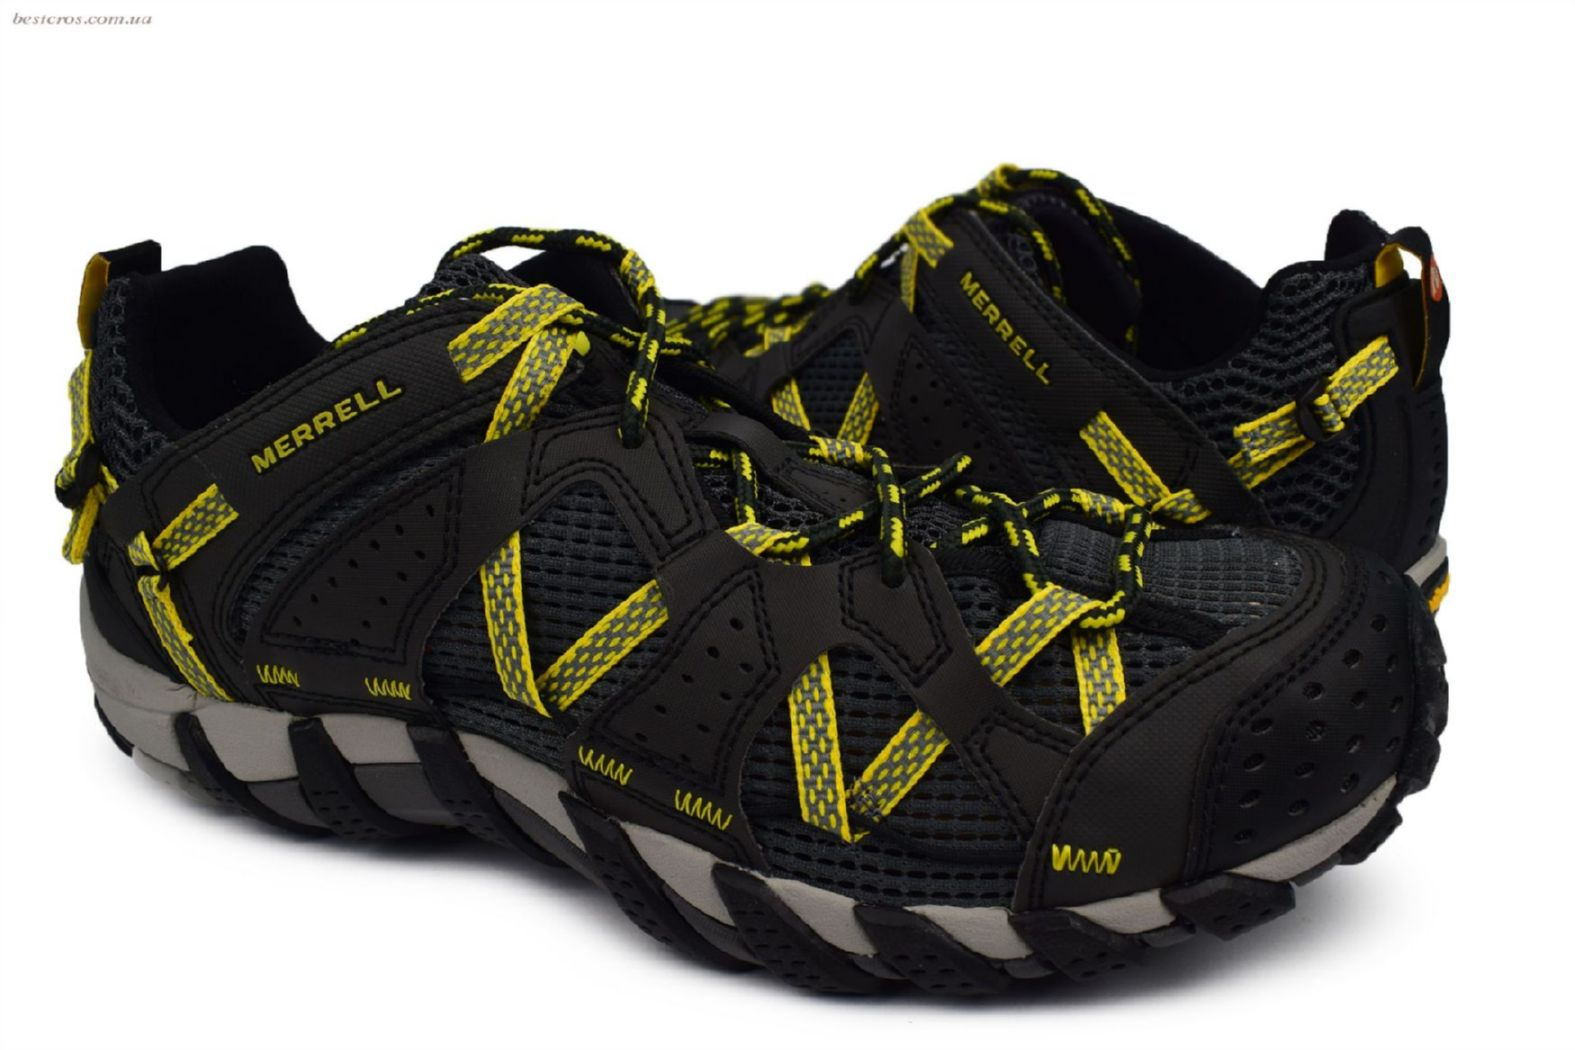 Мужские кроссовки Merrell Waterpro Maipo Black/Yellow - фото №7